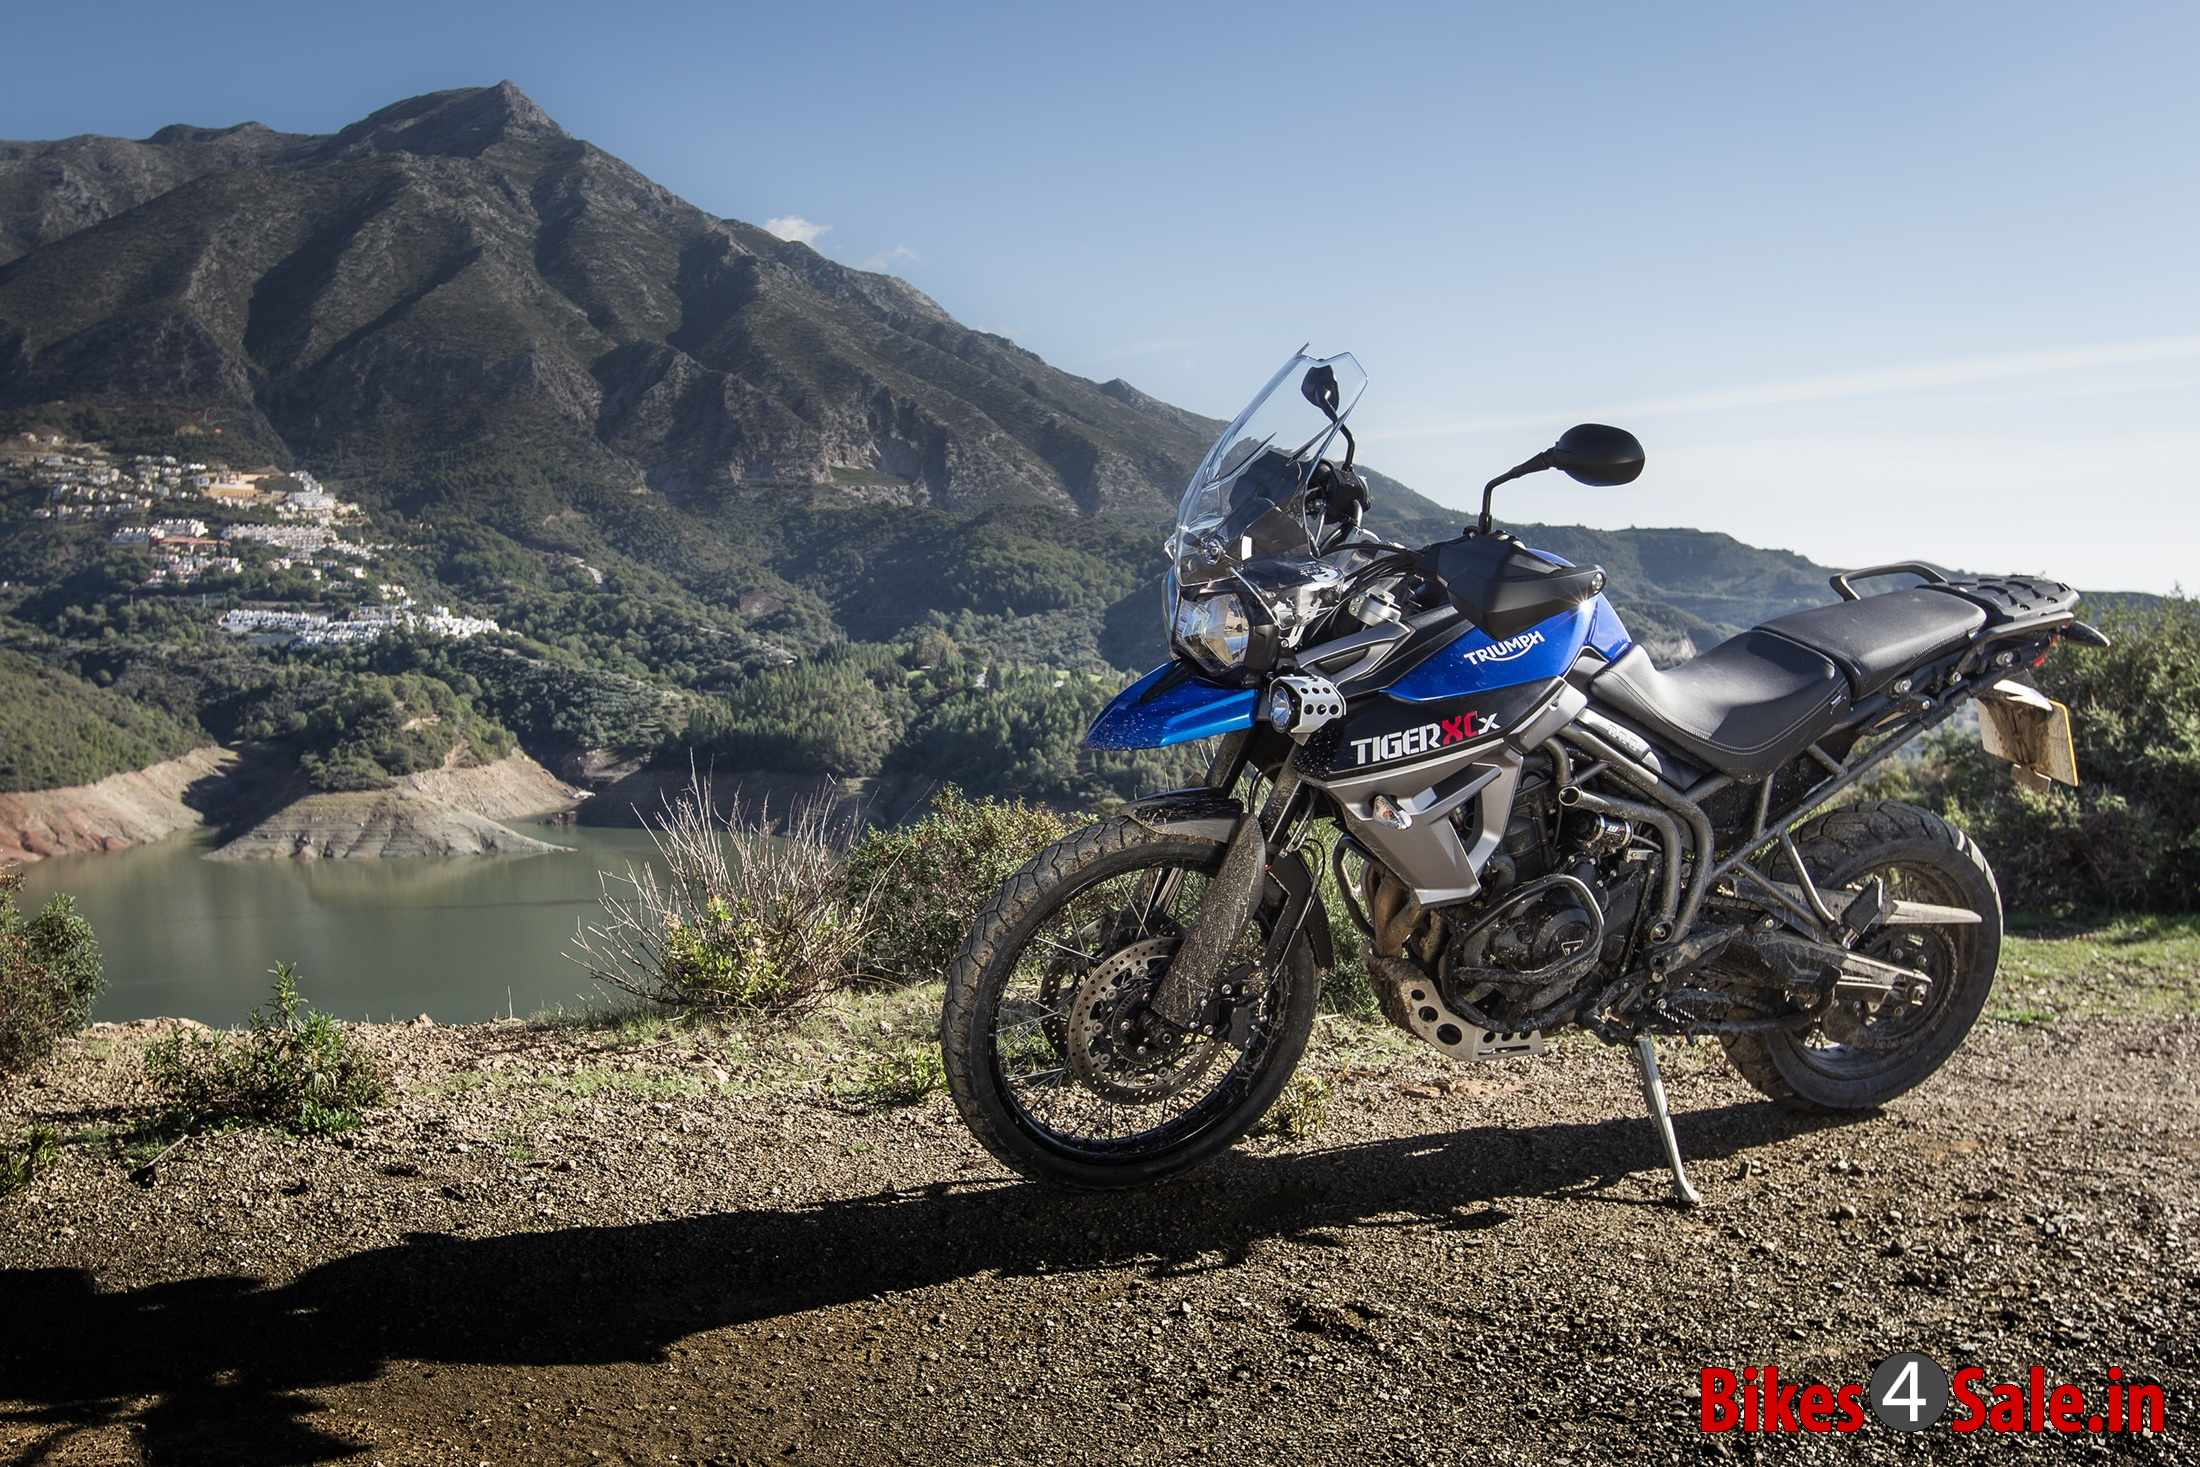 Triumph Tiger 800 Xcx Motorcycle Picture Gallery Bikes4sale